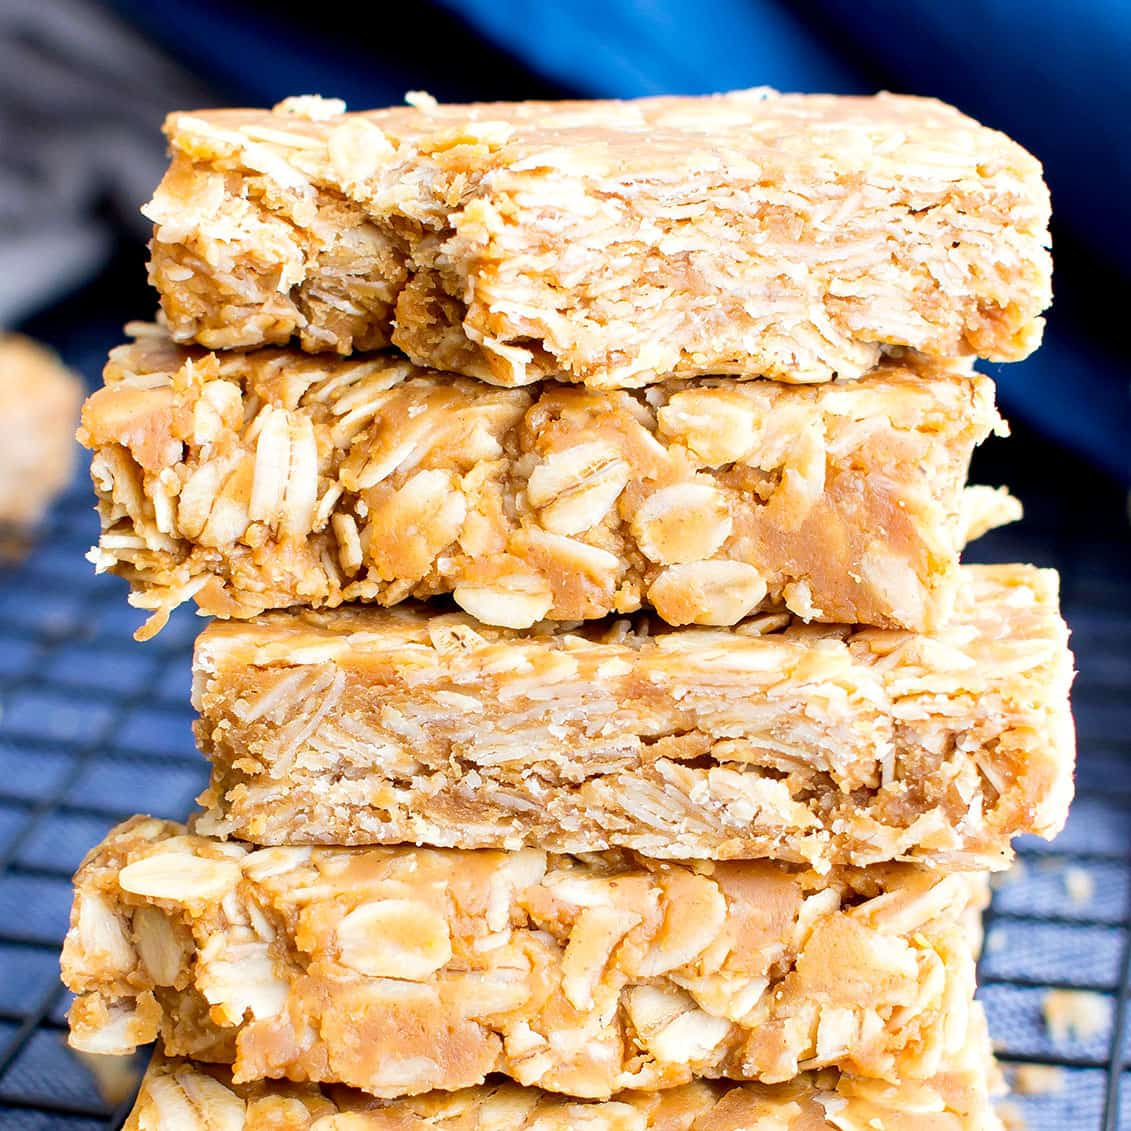 3 Ingredient No Bake Peanut Butter Granola Bars (GF): this homemade peanut butter granola bars recipe so EASY! The best oatmeal peanut butter granola bars recipe without honey, that taste like honey roasted peanuts. Healthy, Vegan, Gluten Free. #PeanutButter #GranolaBars #NoBake #Oatmeal | Recipe at BeamingBaker.com